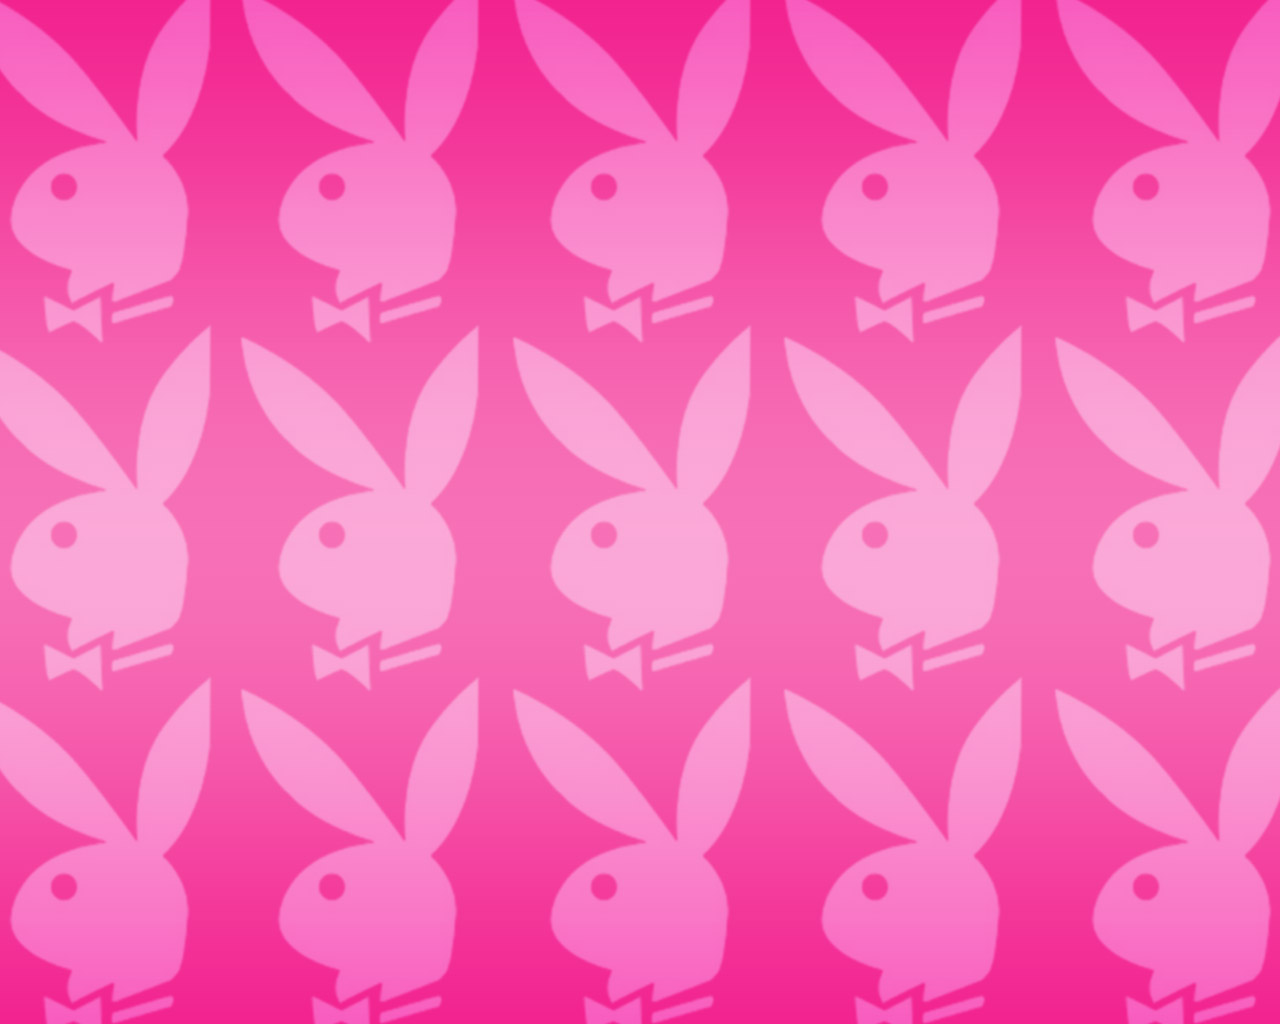 Bunny Phone Wallpapers For Desktop Backgrounds HD Wallpapers 1280x1024